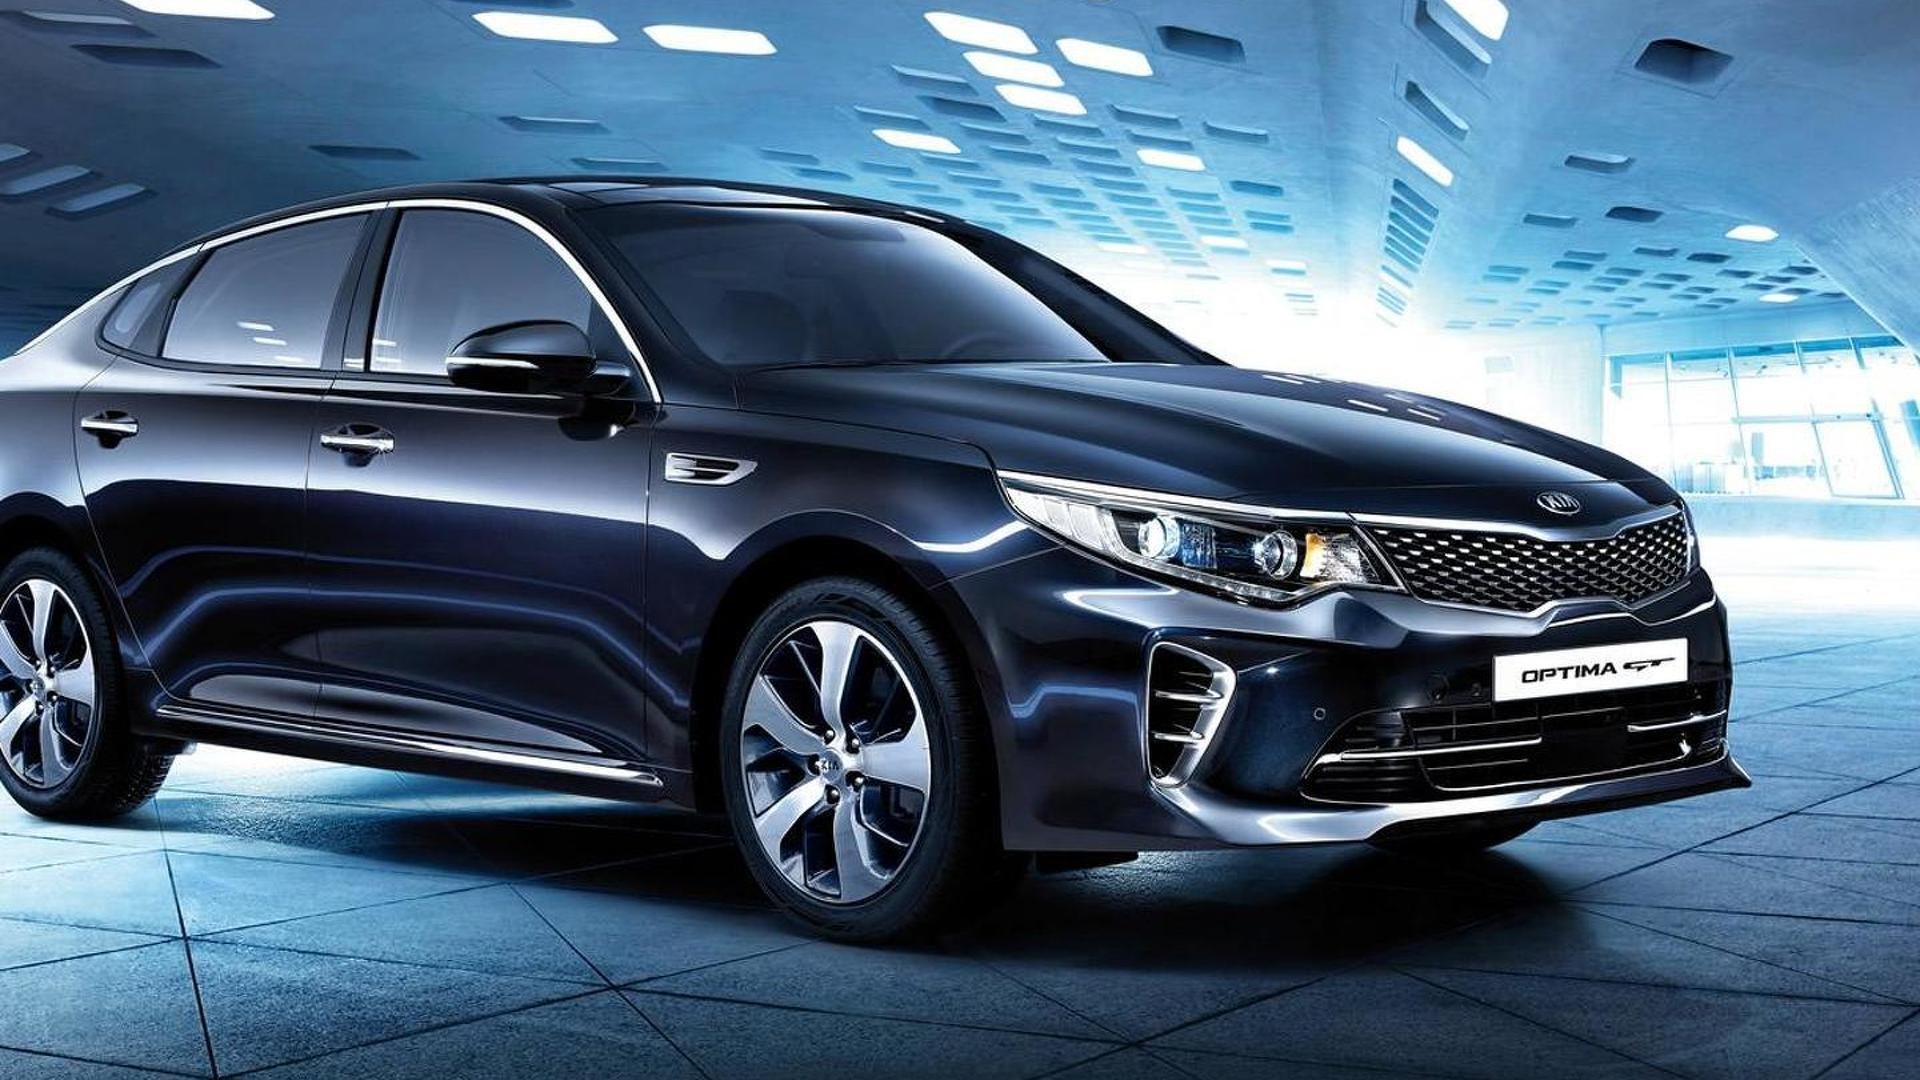 Kia Optima Wagon Officially Confirmed Together With Gt And Plug In Hybrid Versions